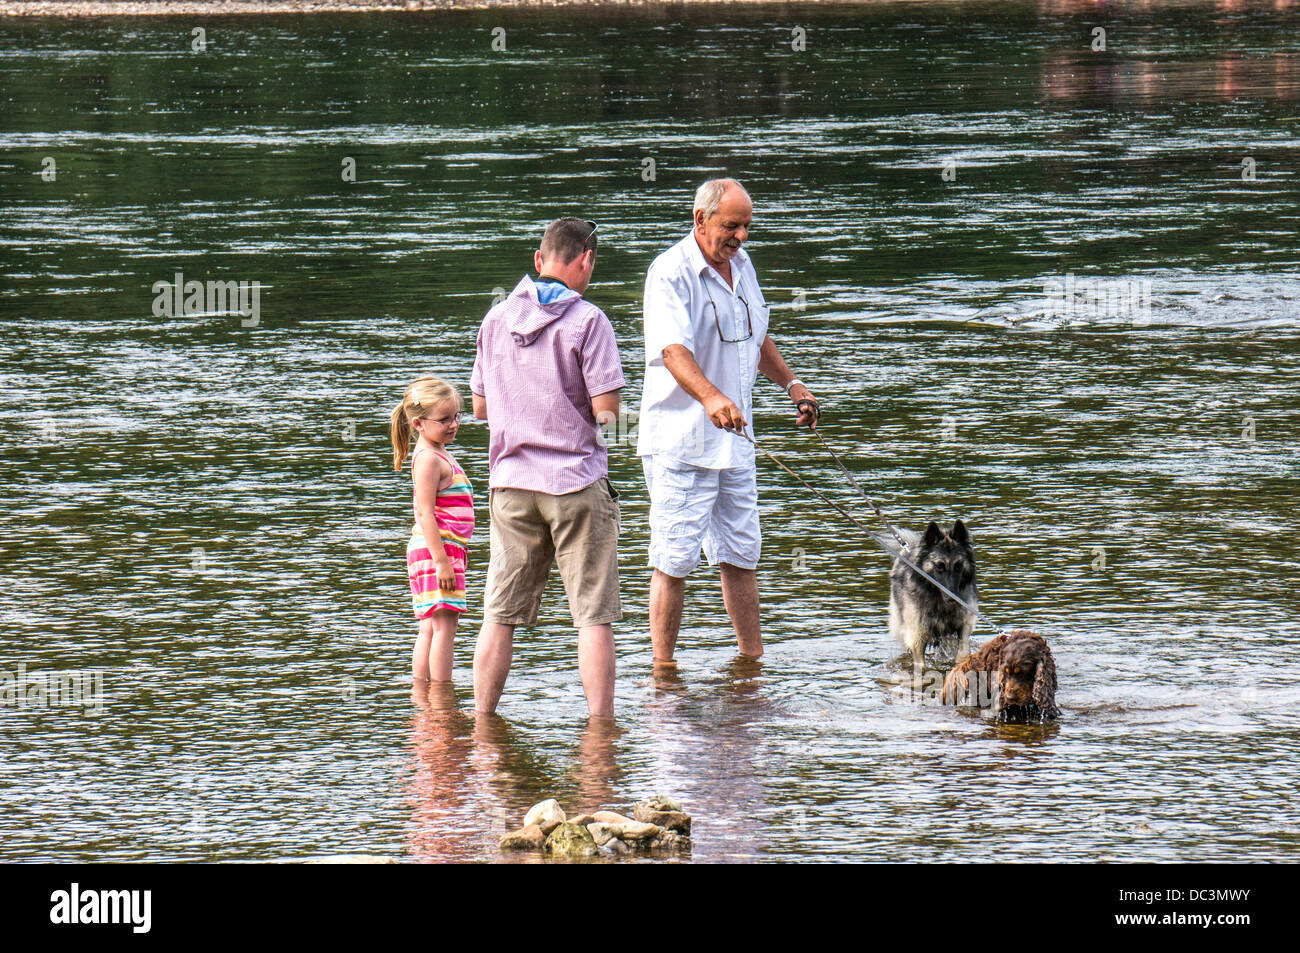 A family and two dogs in the shallow water of the river in Limeuil, where the Dordogne and Vézère rivers - Stock Image